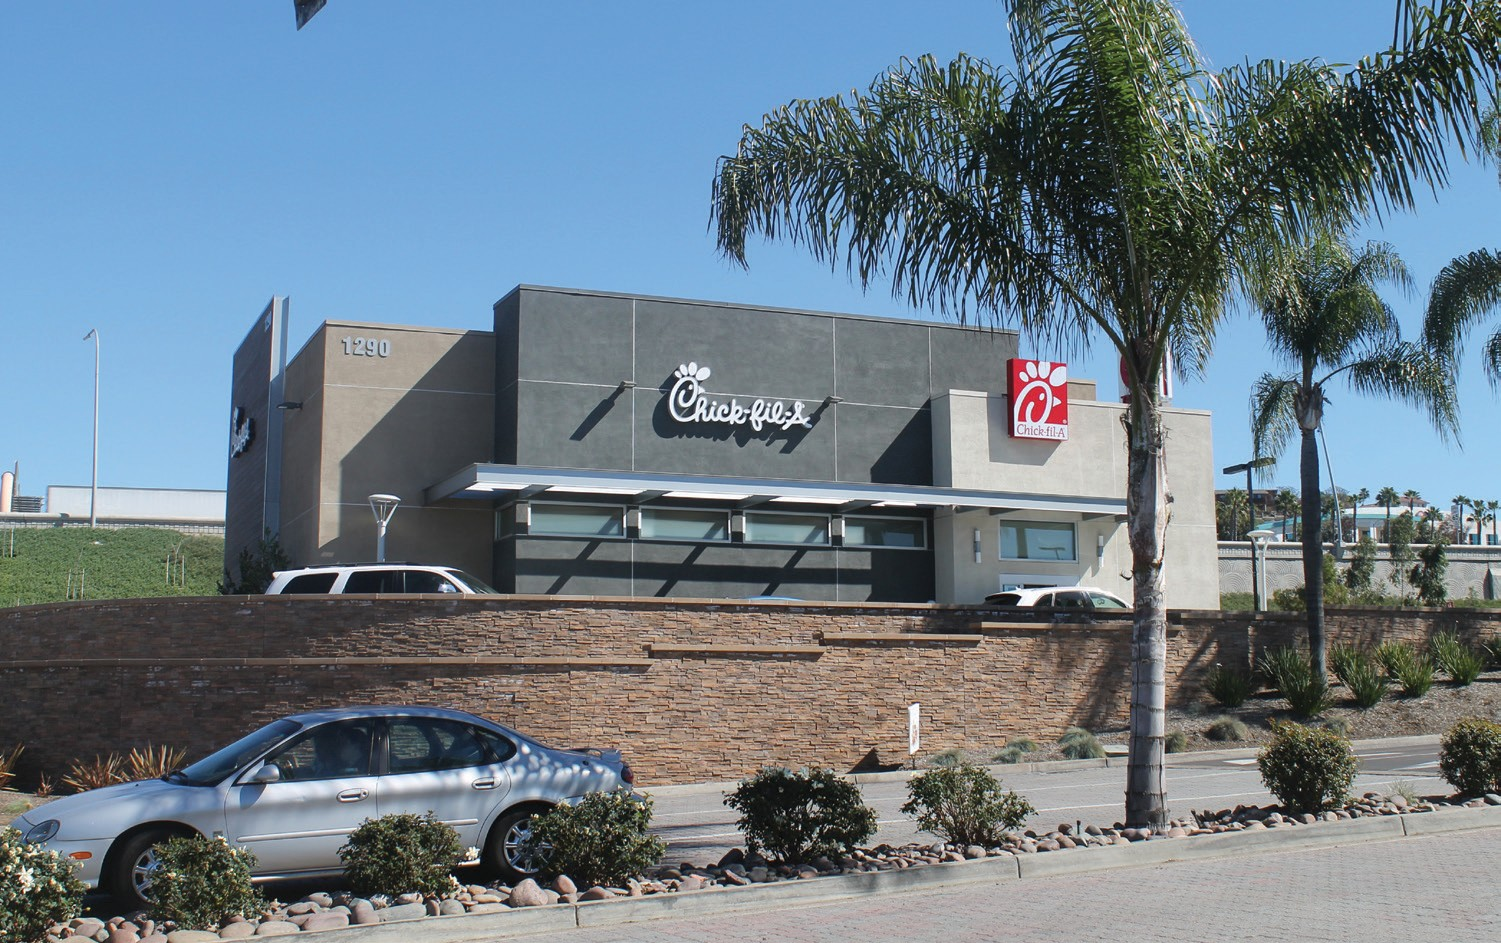 ABOVE: The Escondido Chick-fil-A, located at 1290 Auto Park Way, is one of the nine San Diego locations that is hosting free giveaways.